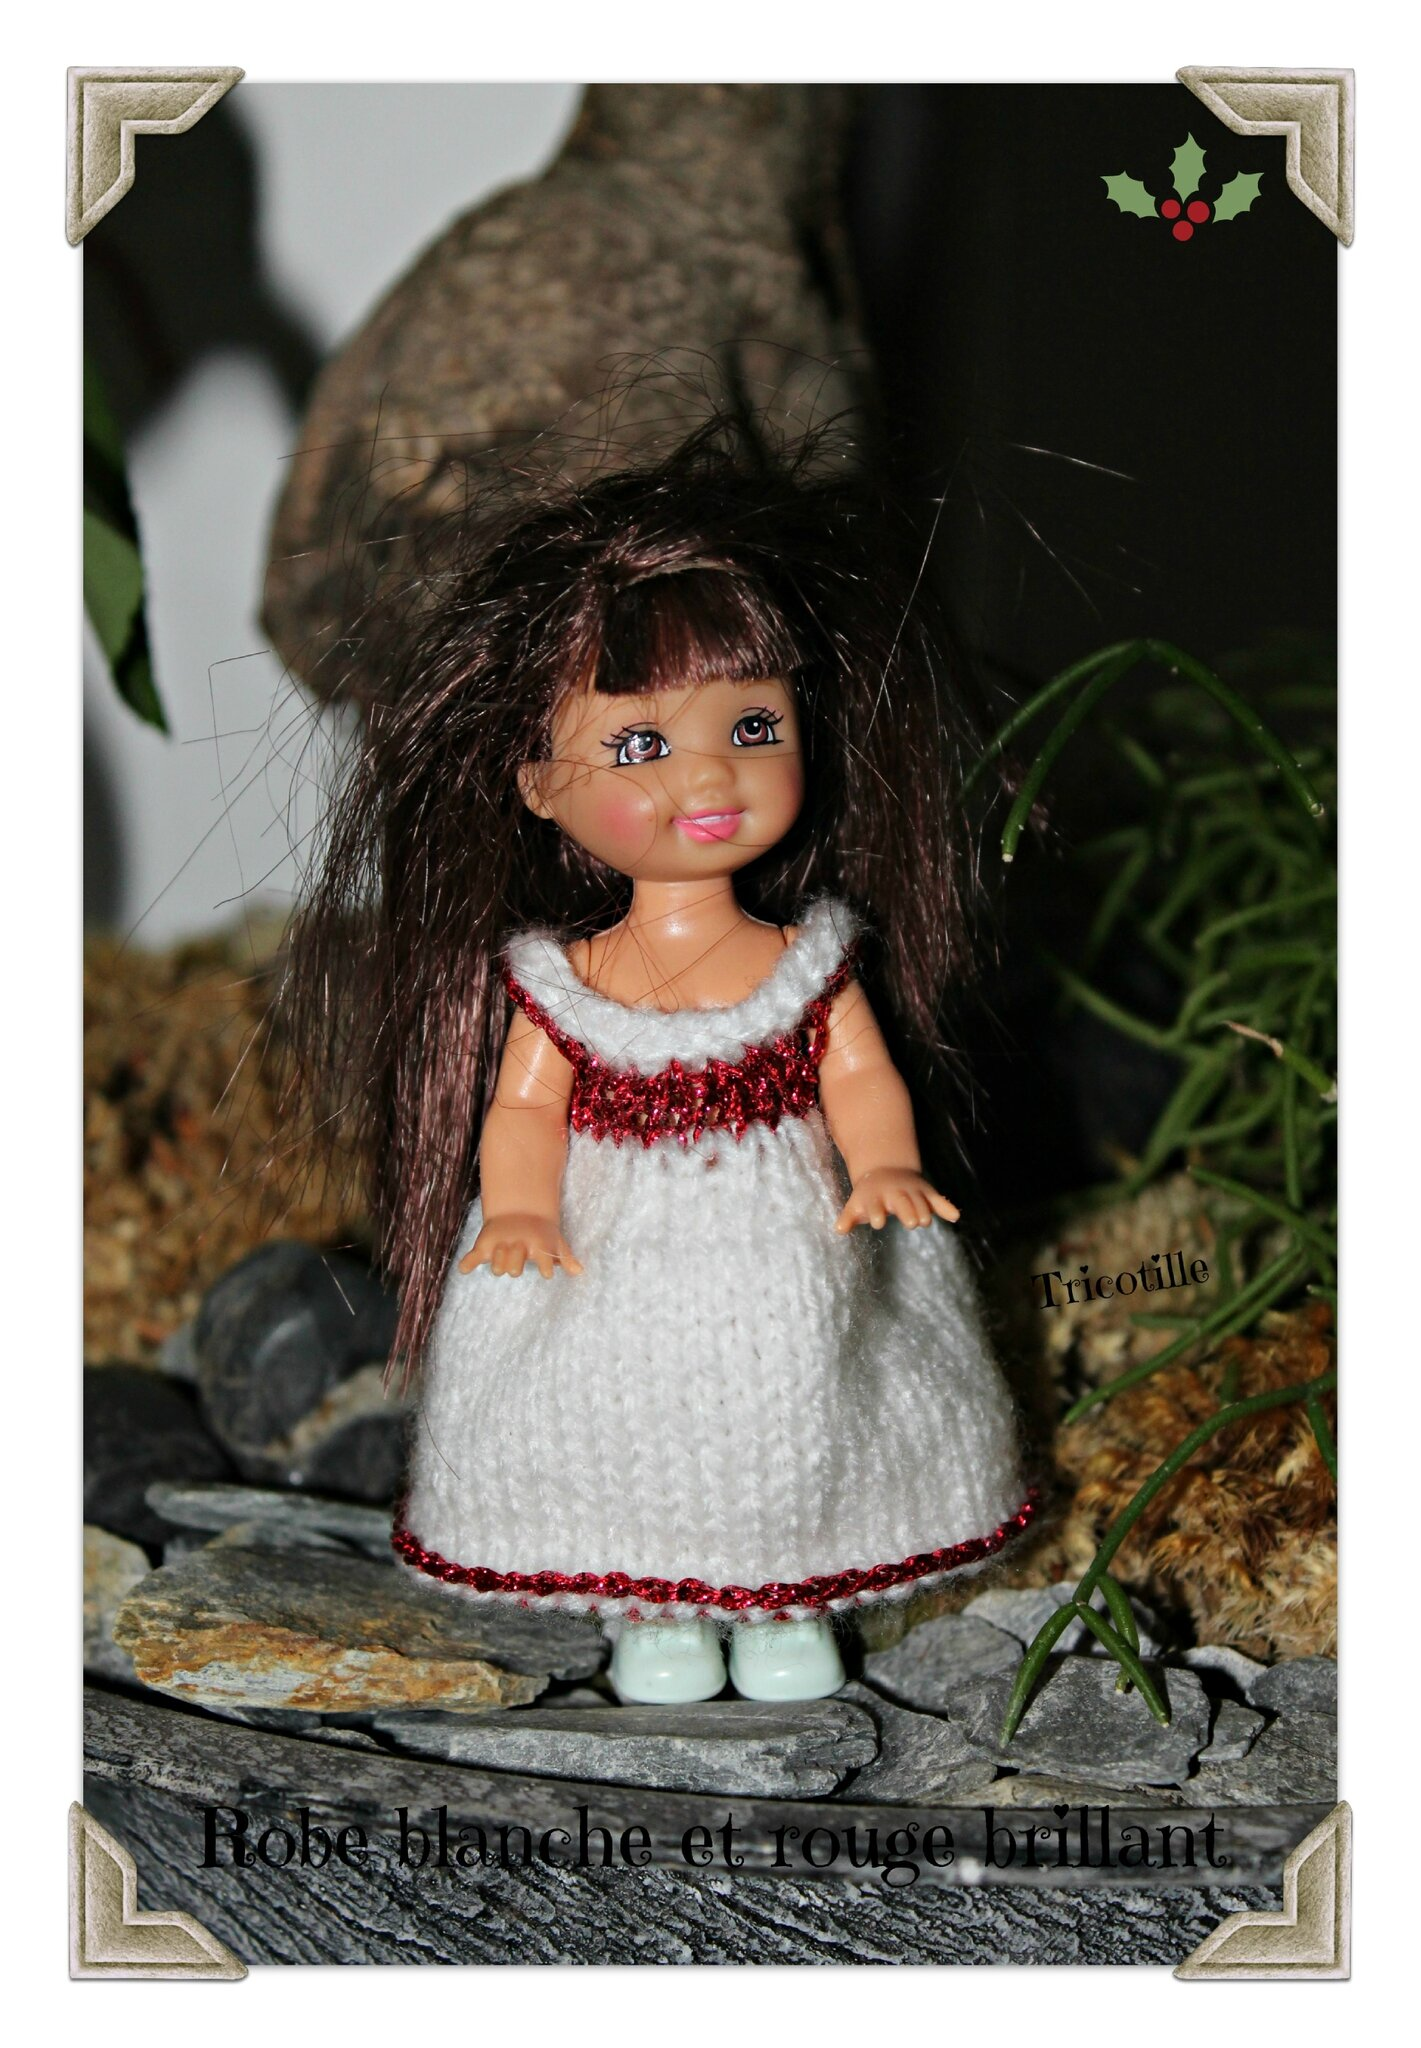 Robe blanche et rouge brillant (Shelly)